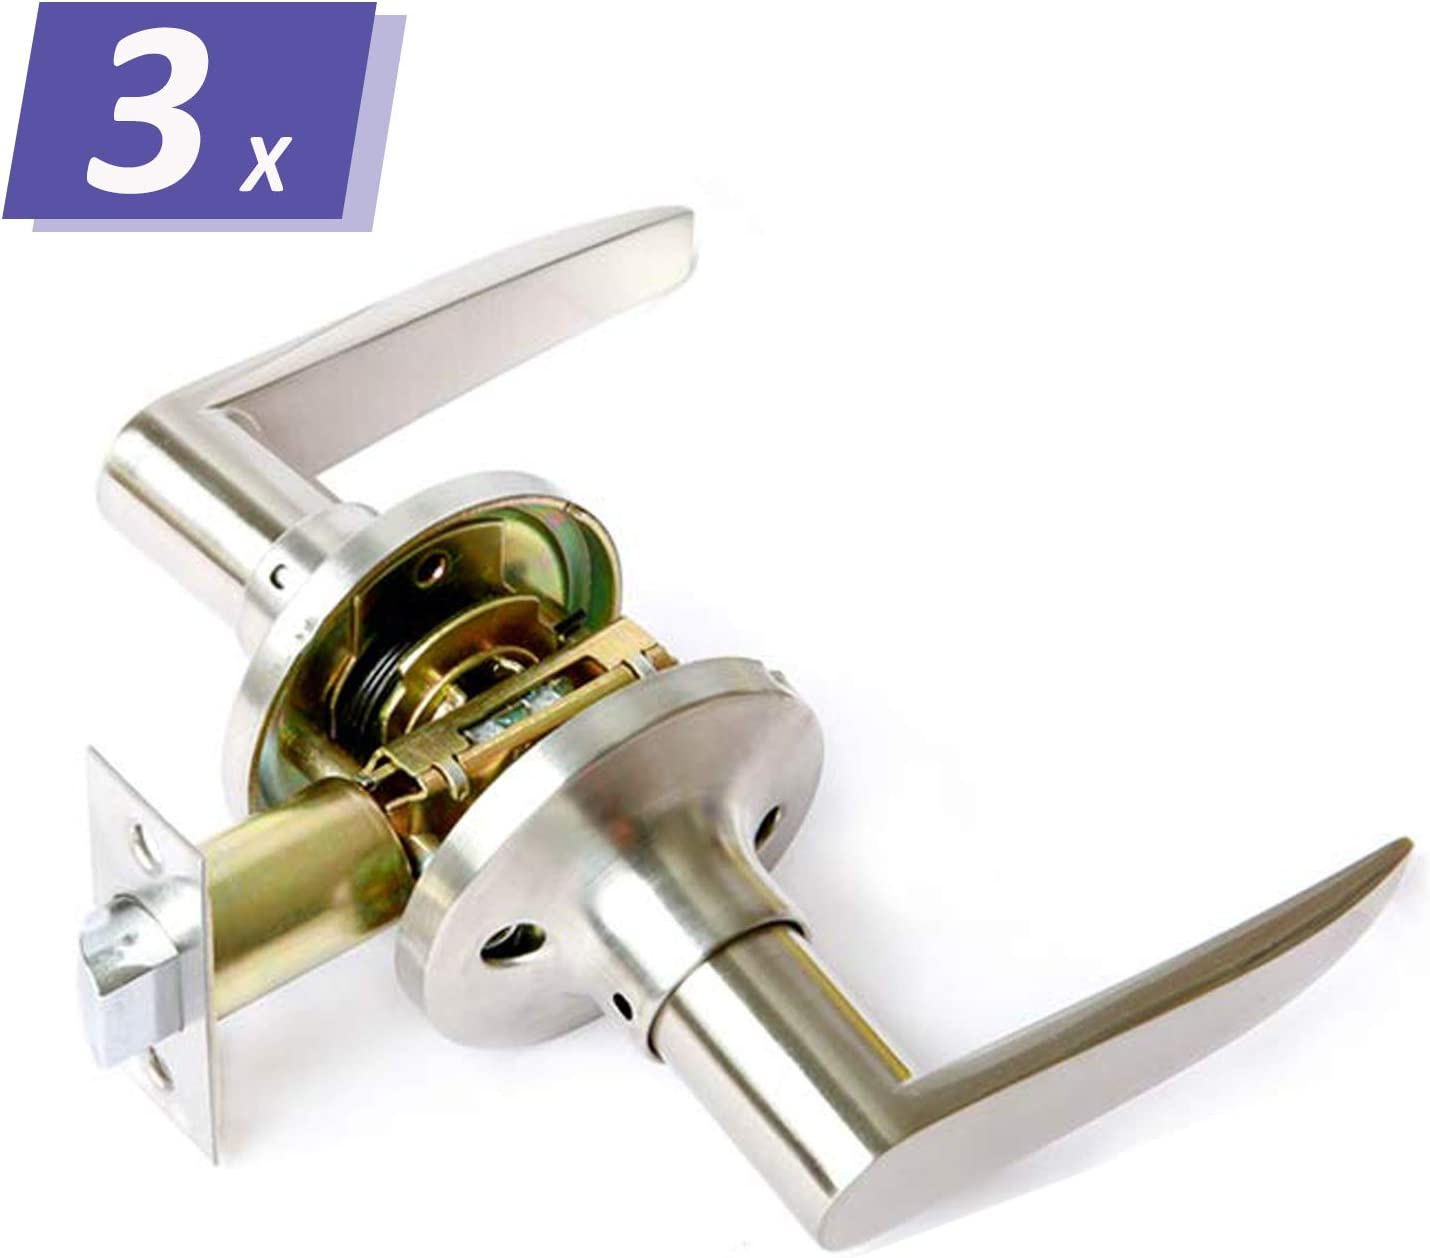 Home/Office Use 3 Pack Passage Door Handles in Brushed Nickel Finish, Reversible for Right/Left Handed Doors, Keyless Unlocking Interior Door Knobs for Hallway/Closets/Laundry Rooms